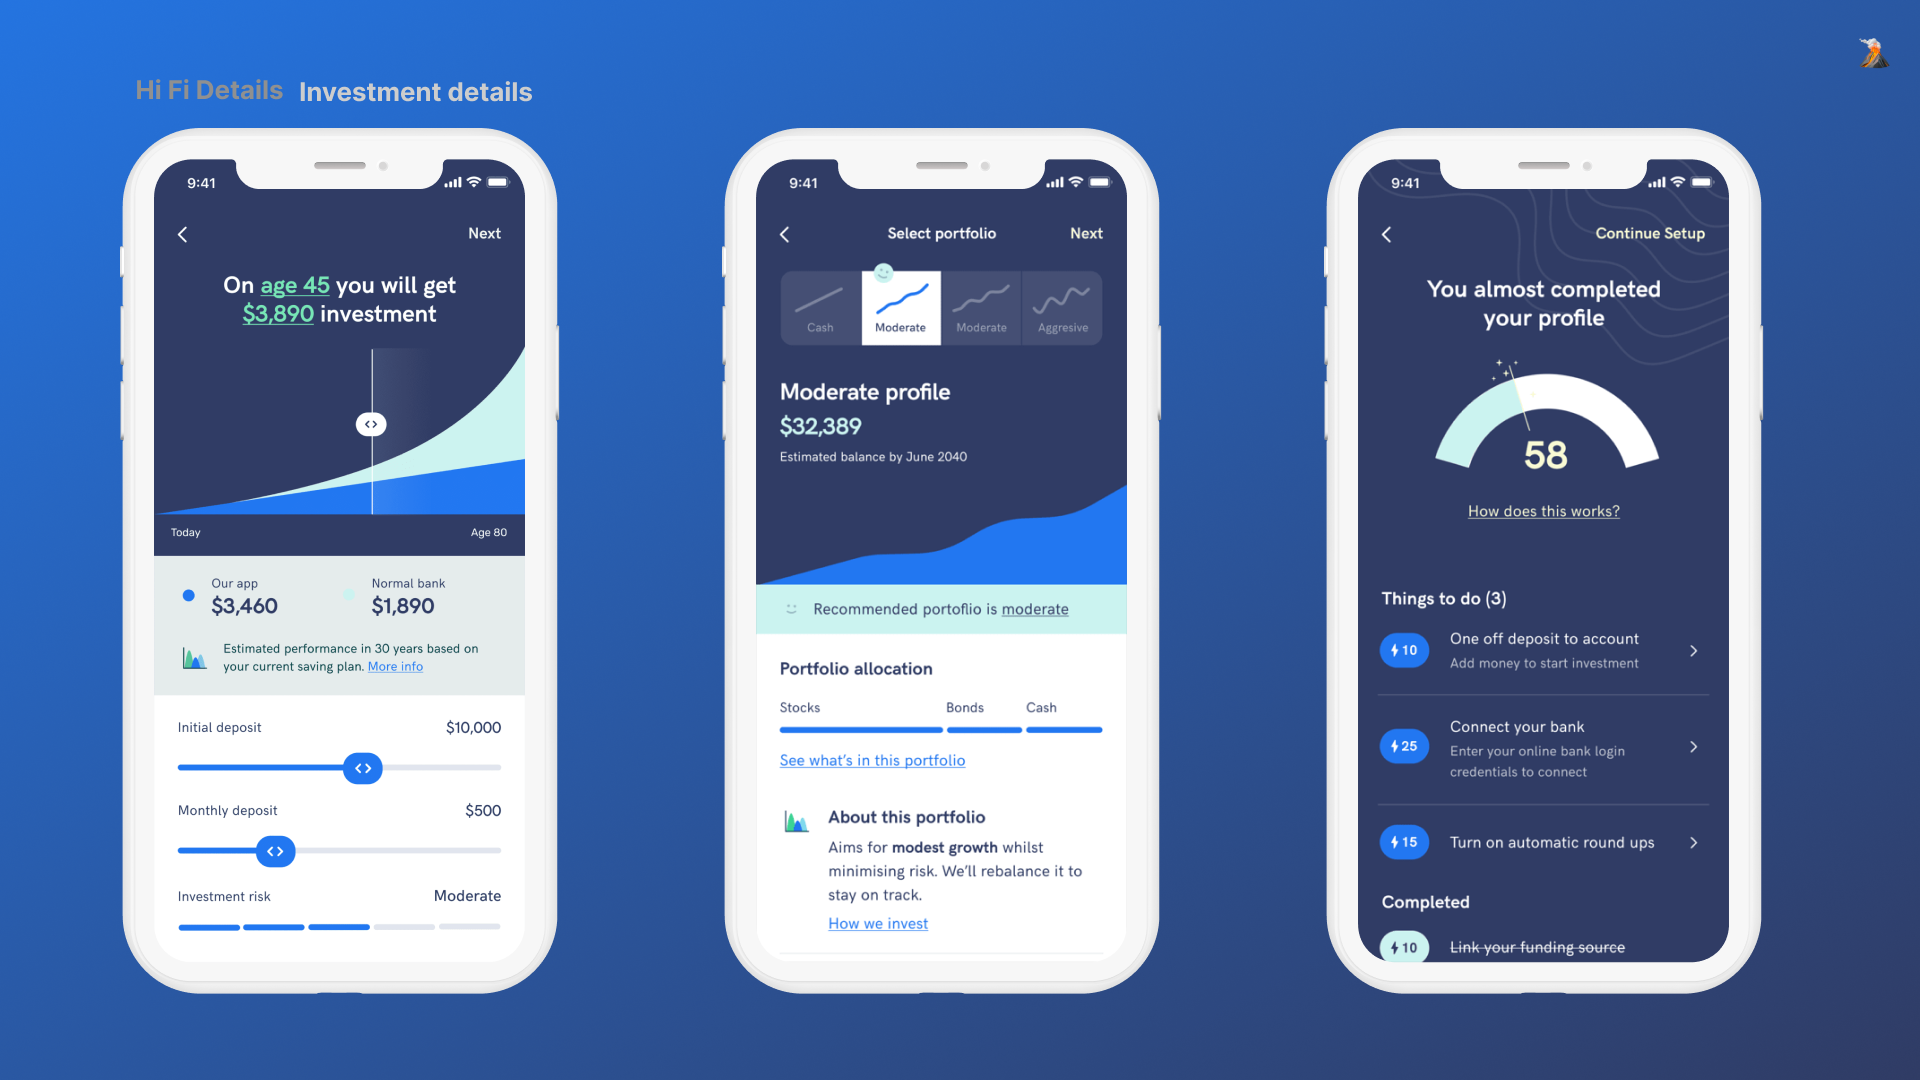 Extra details for onboarding